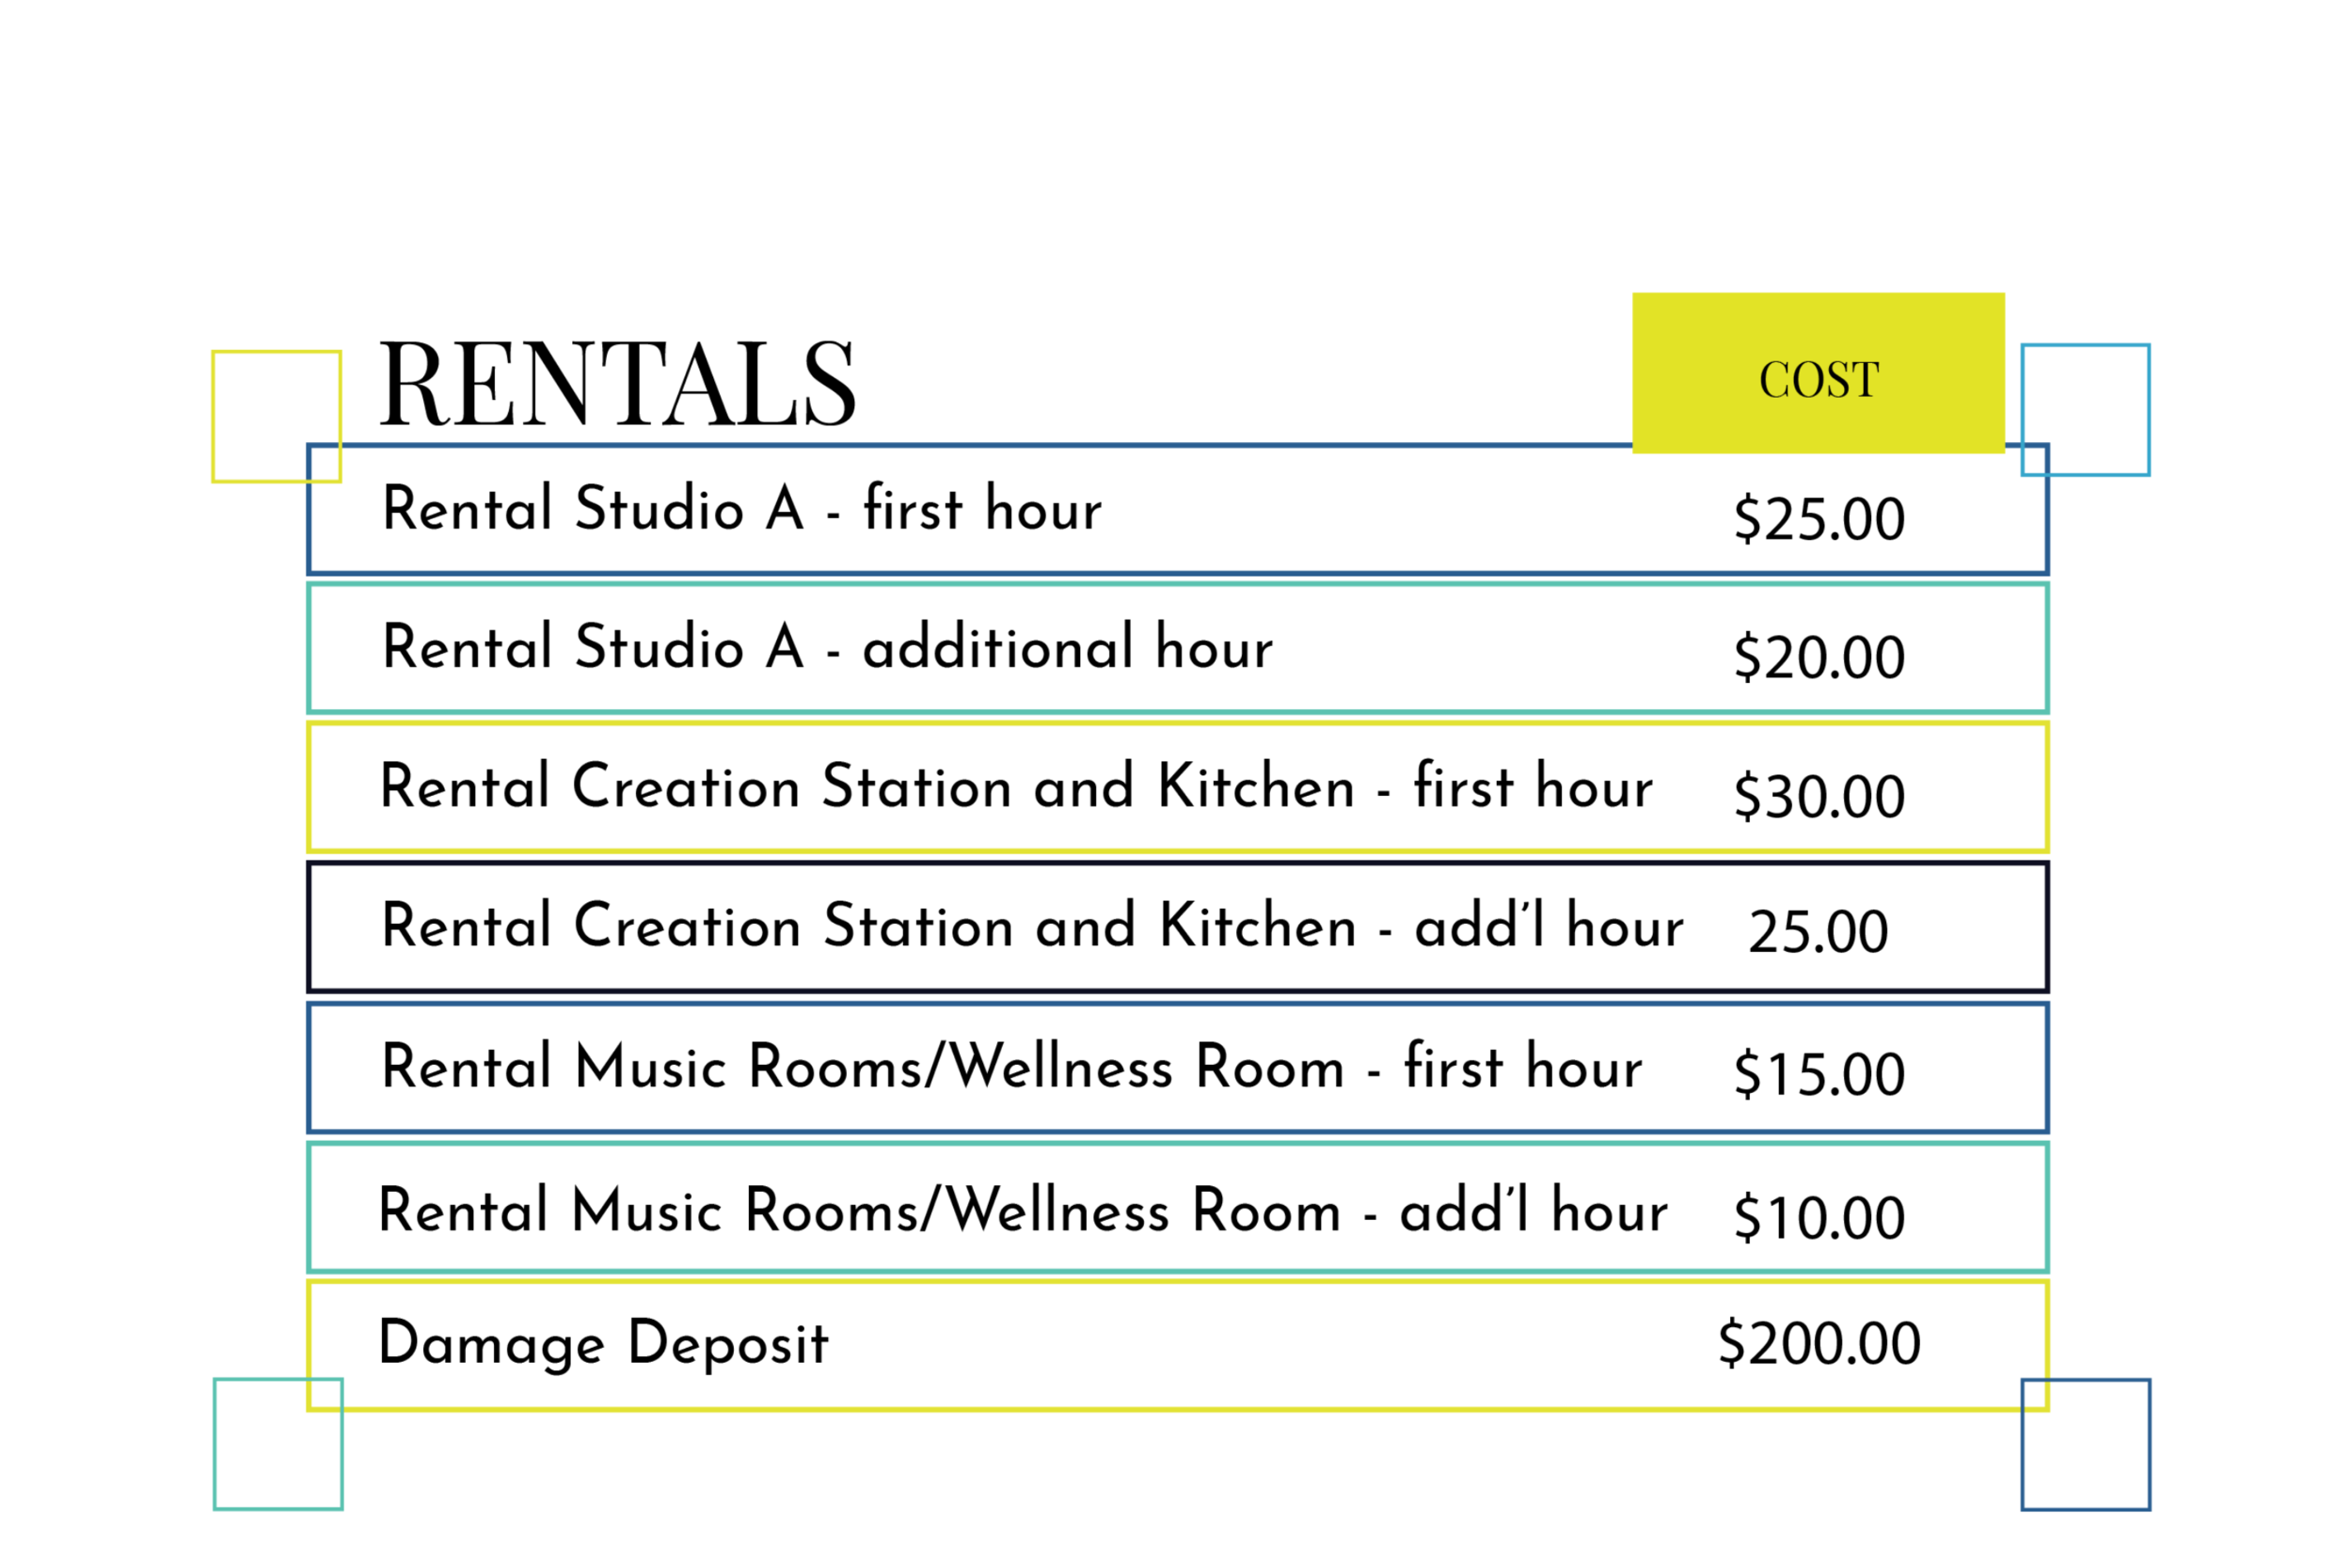 prices do not include HST